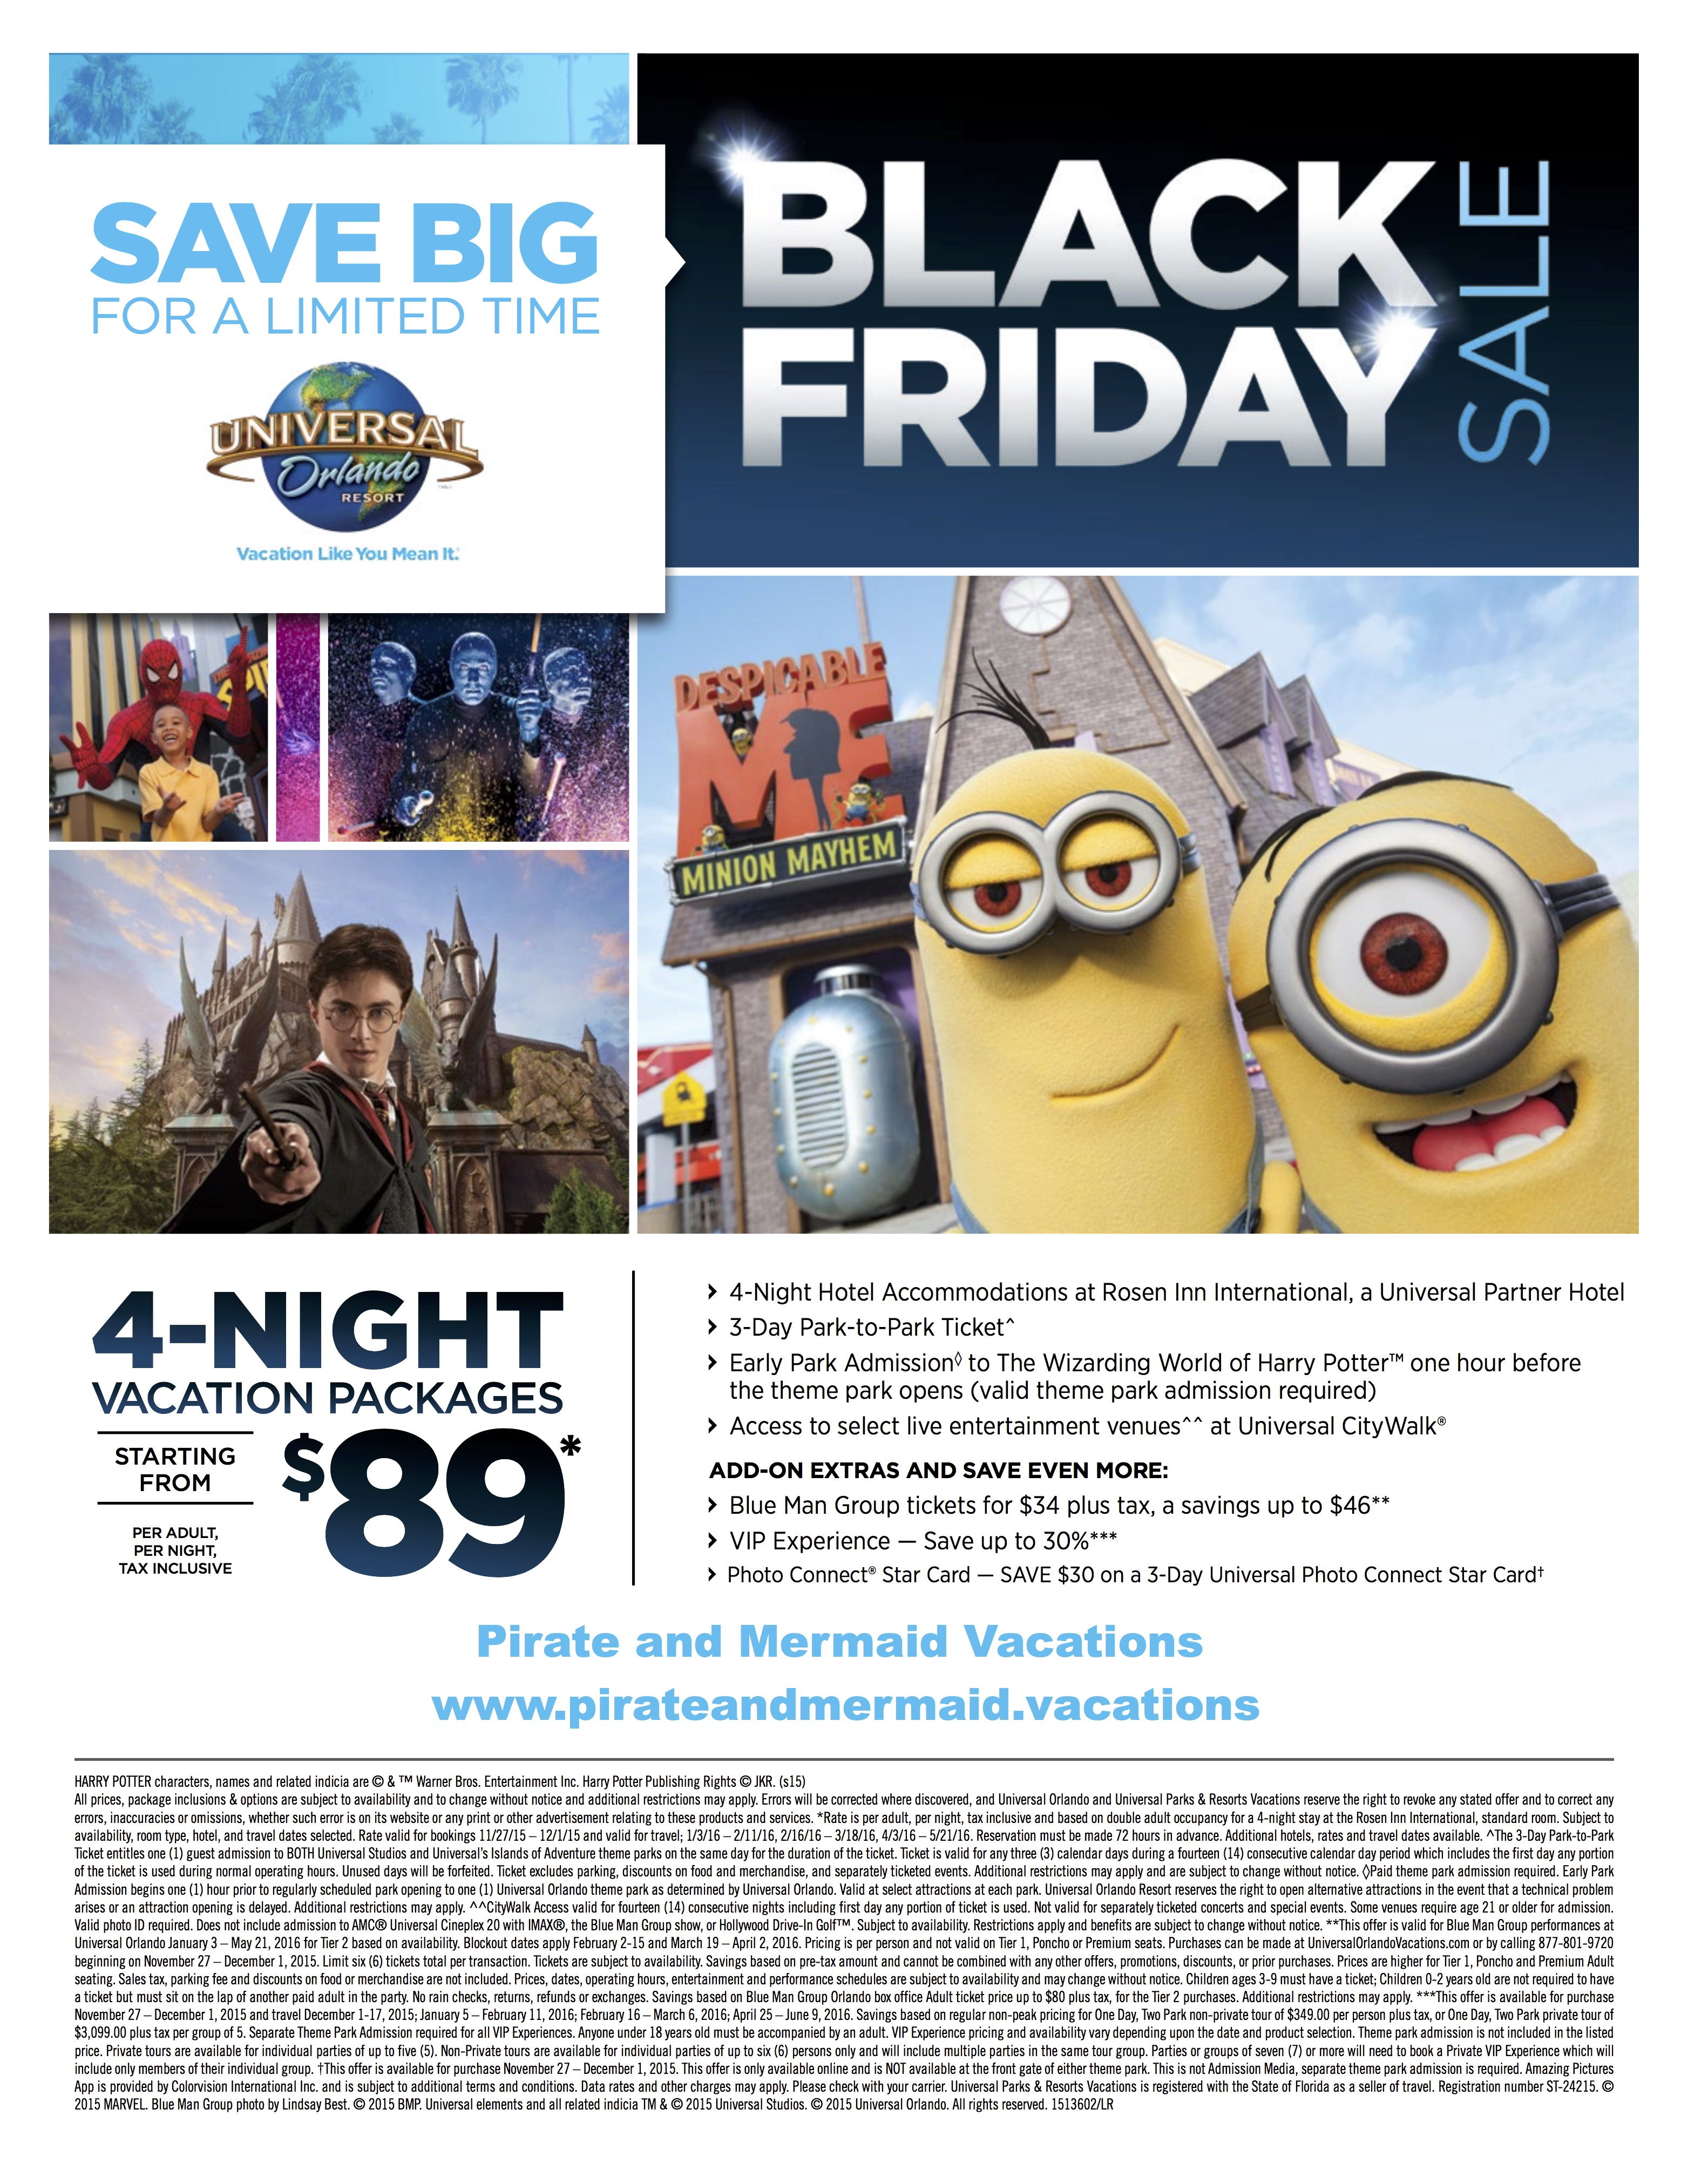 Universal resort black friday special book by 12 1 15 for Black friday vacation deals all inclusive